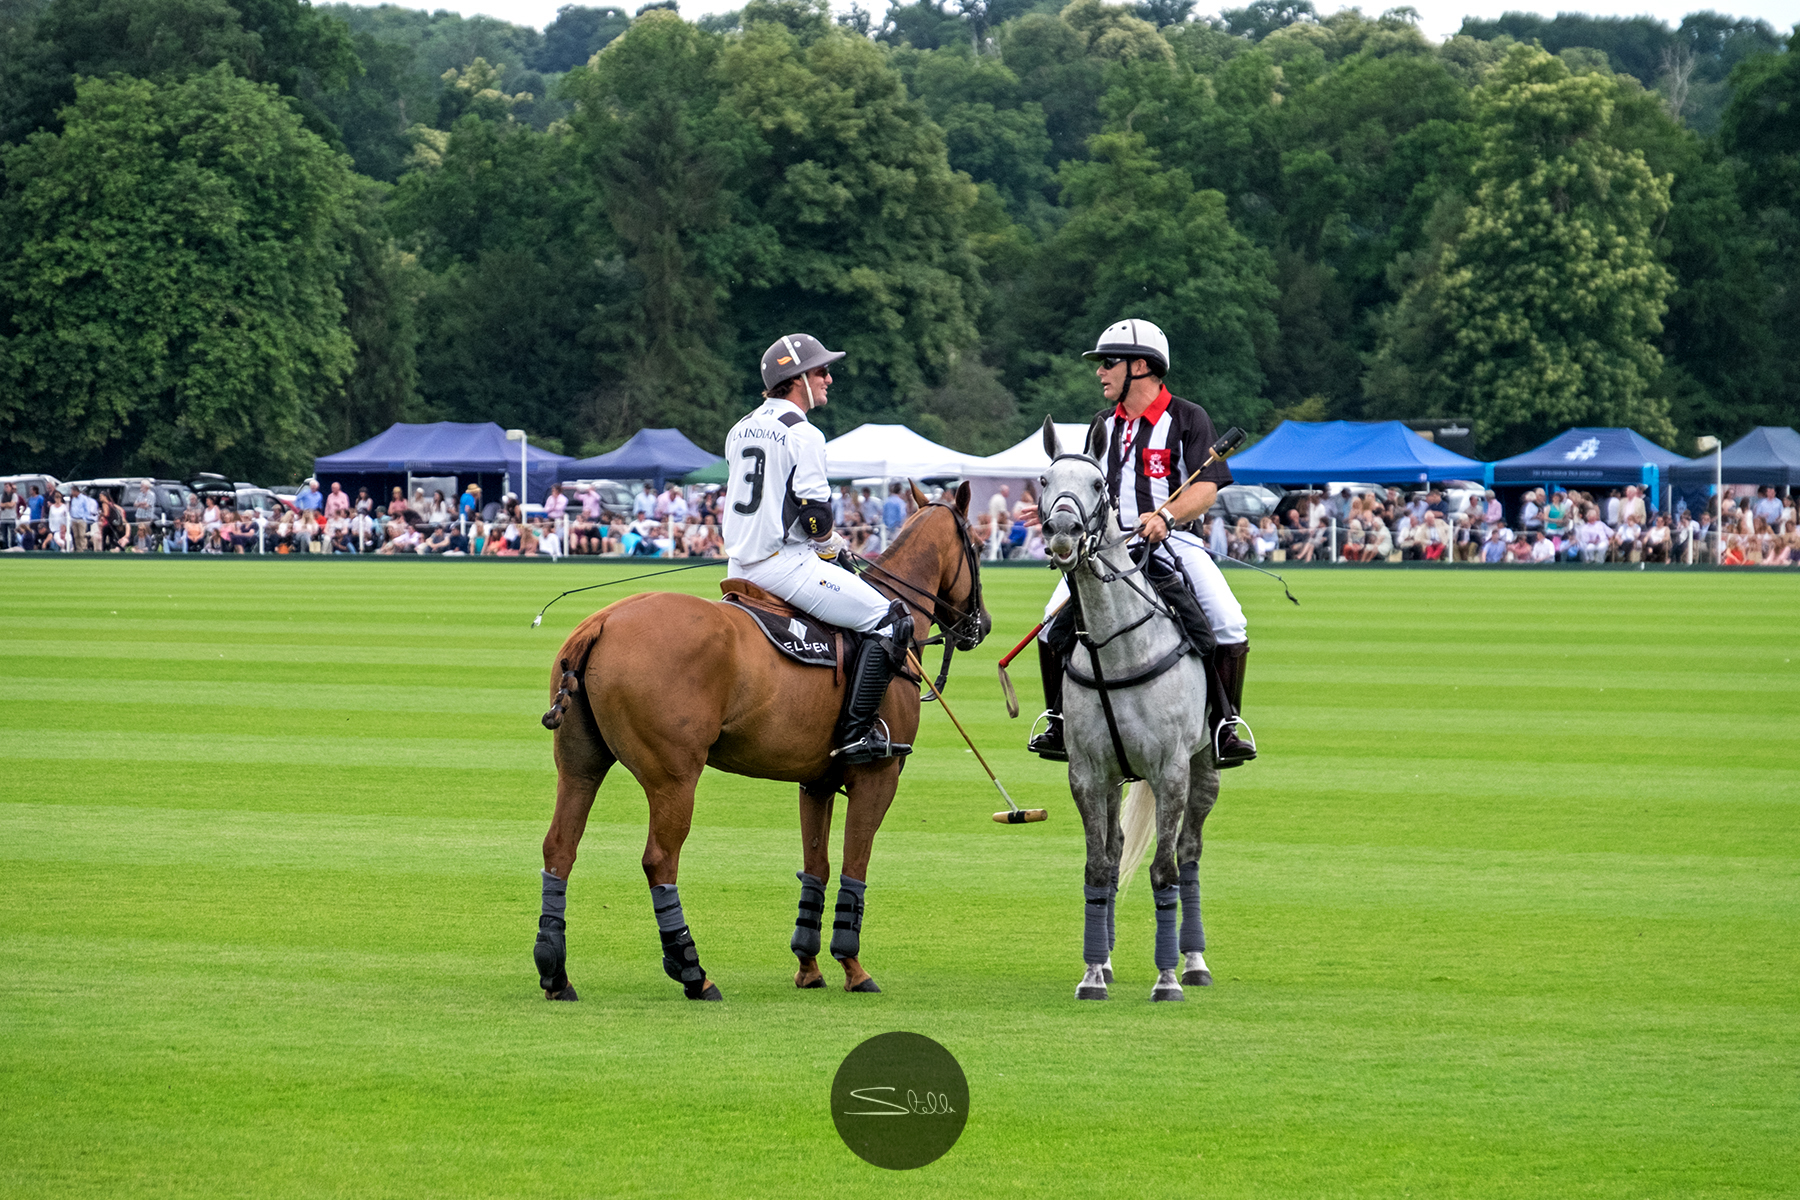 Stella Scordellis Jaeger-LeCoultre Gold Cup 2016 18 Watermarked.jpg